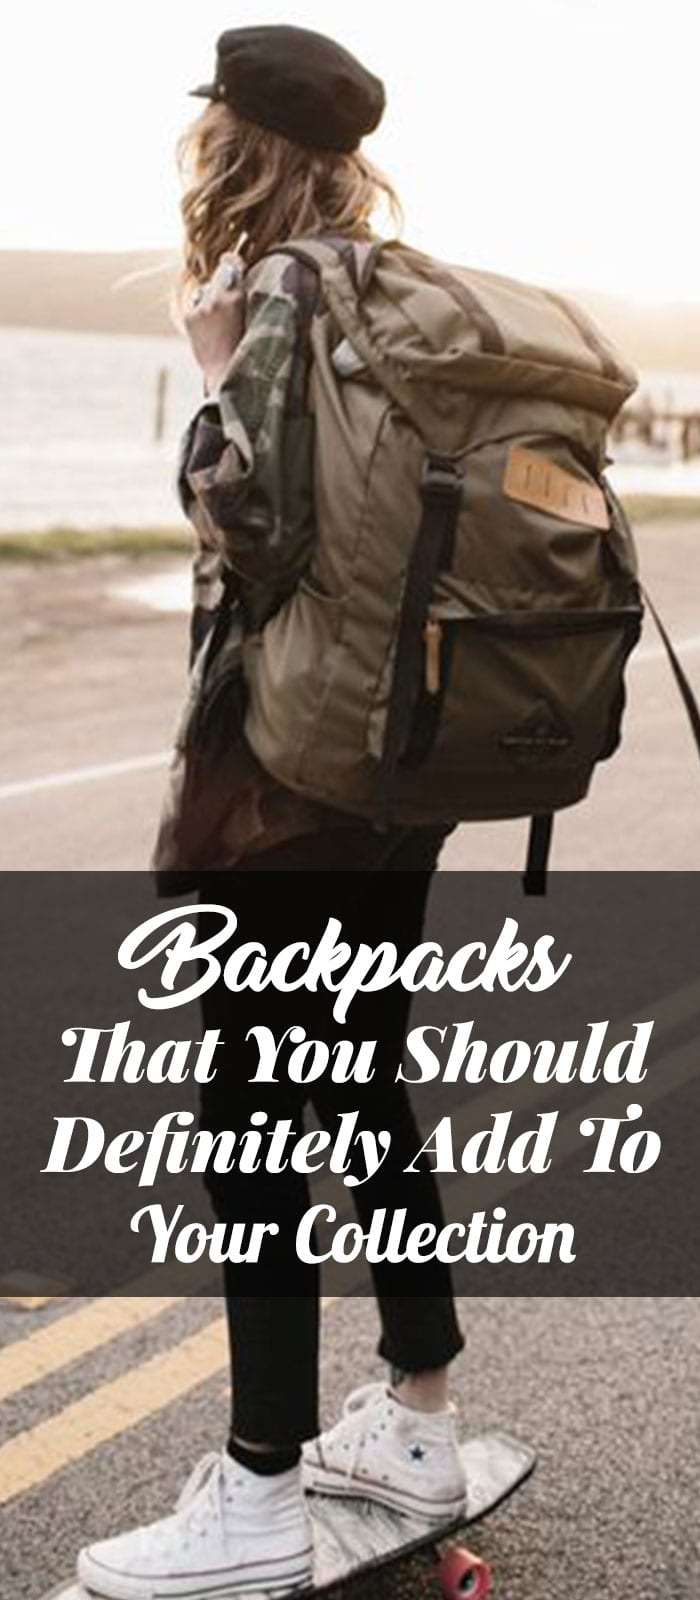 Backpacks That You Should Definitely Add To Your Collection